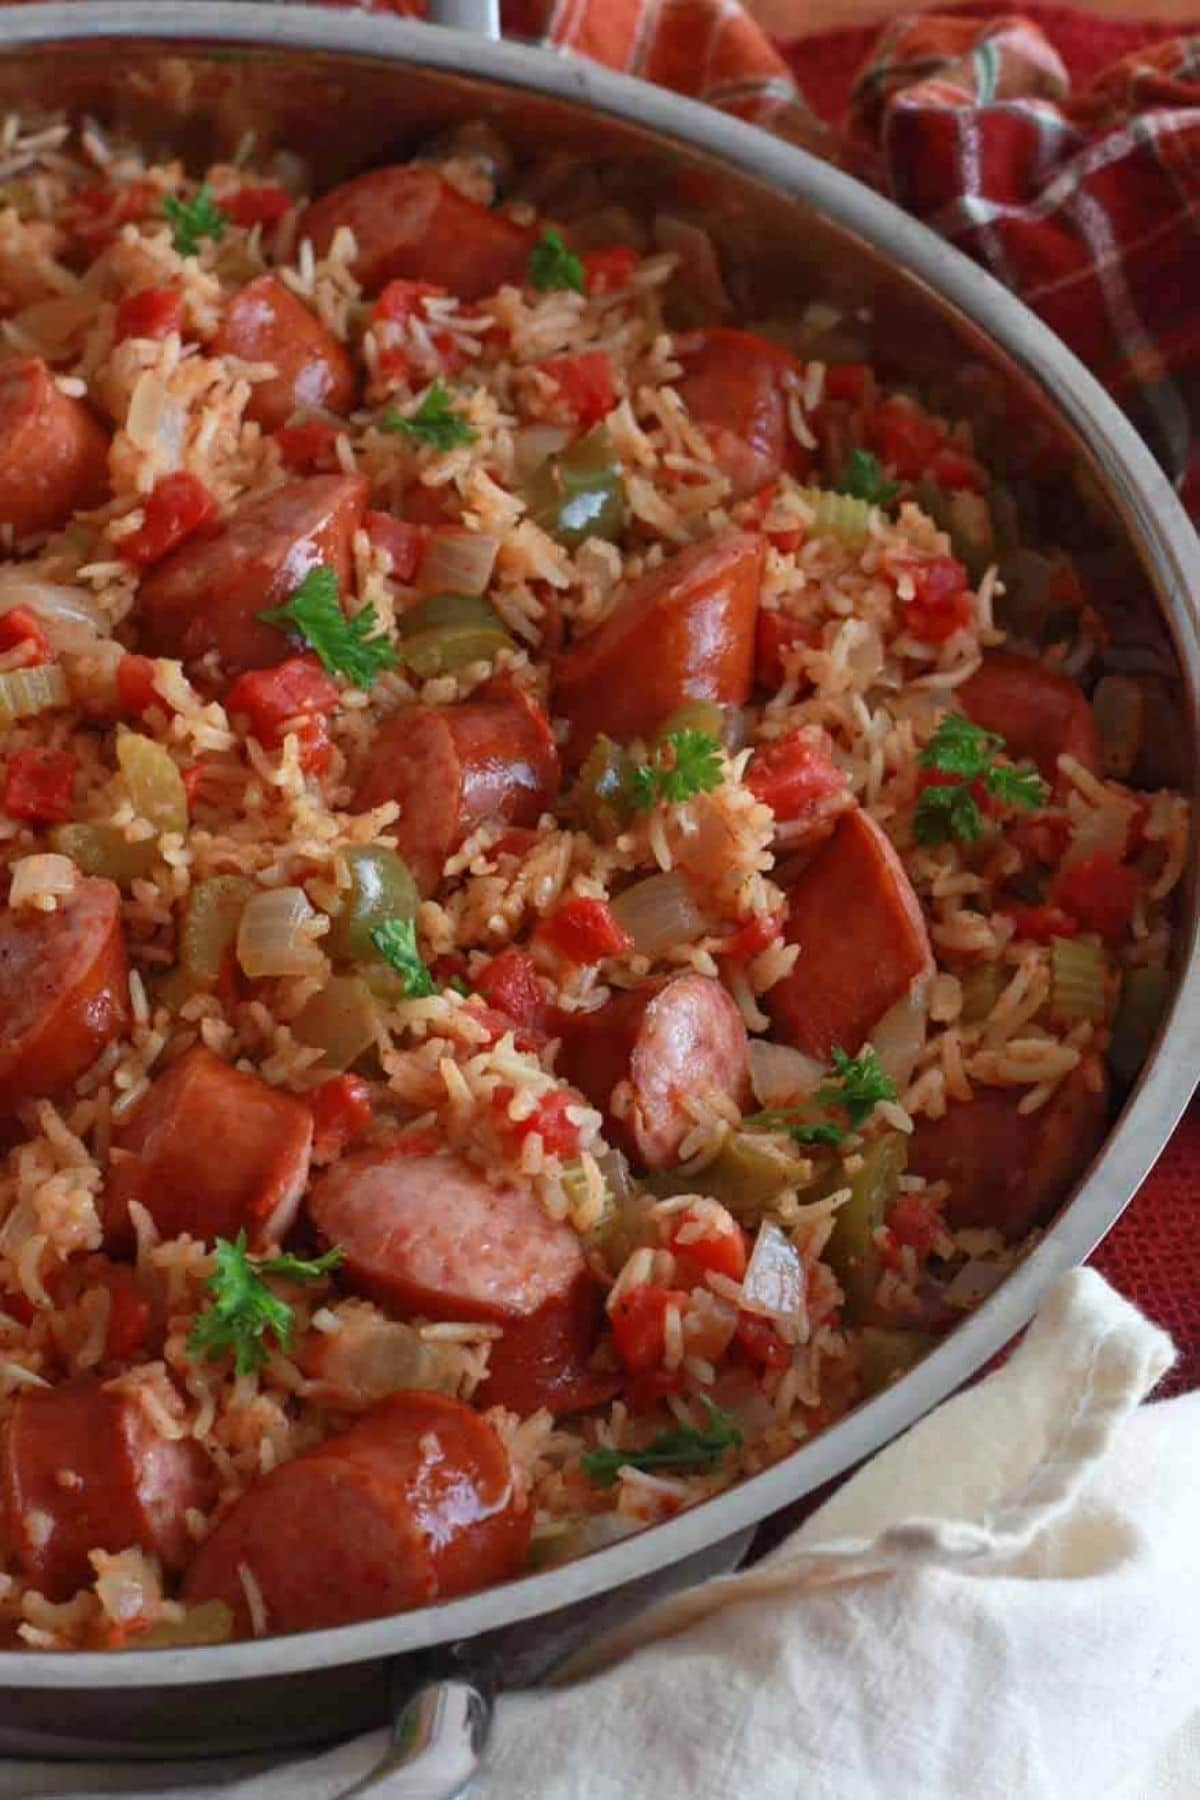 Large skillet filled with rice and sausage